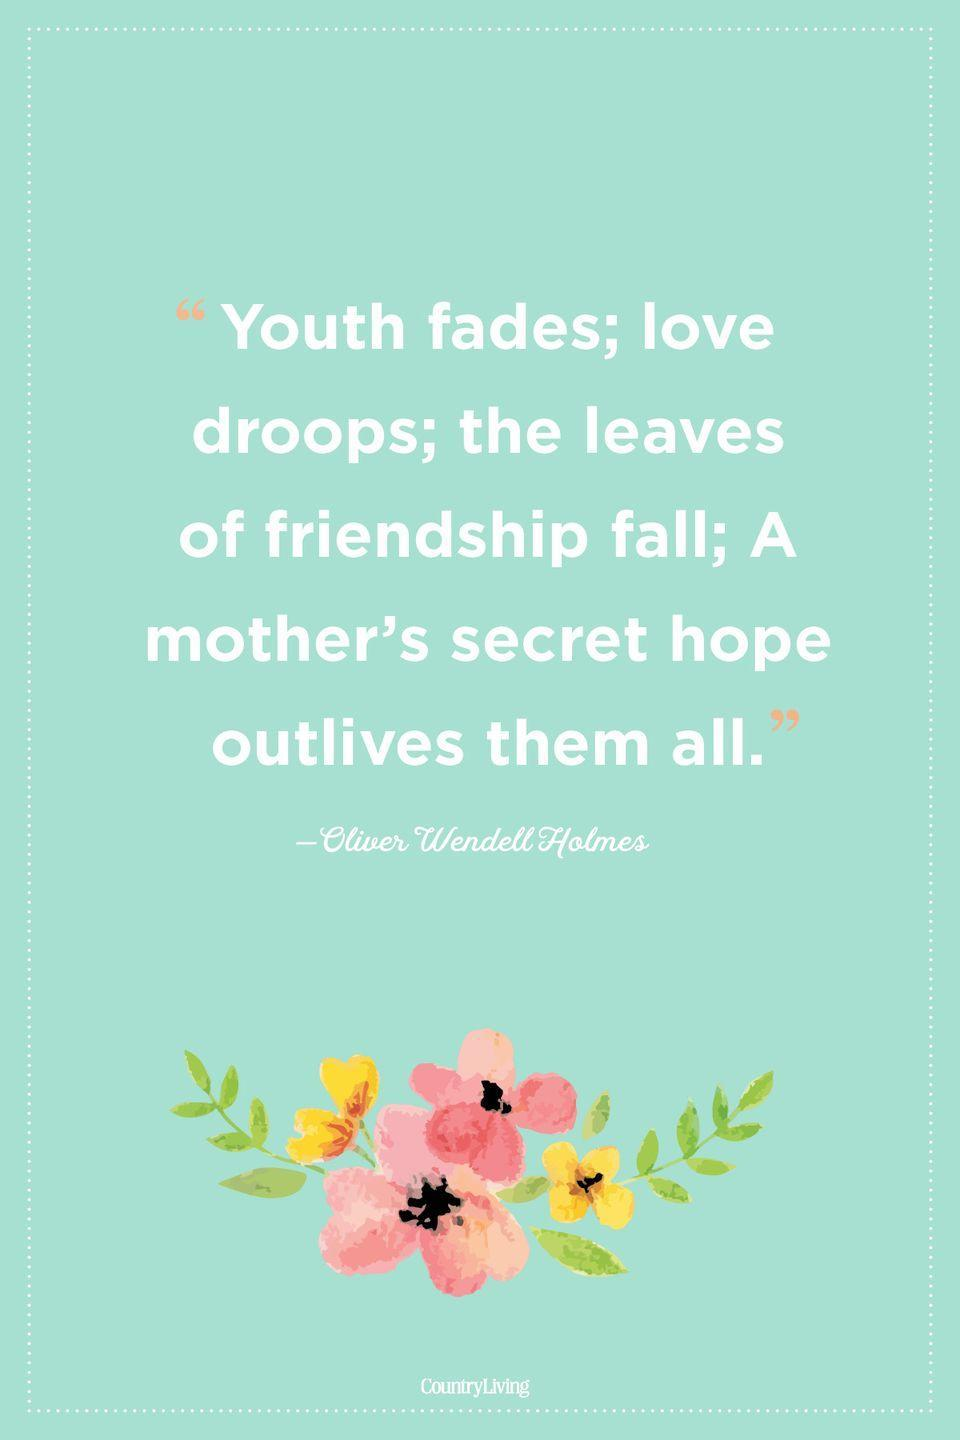 "<p>""Youth fades; love droops; the leaves of friendship fall; A mother's secret hope outlives them all.""</p>"